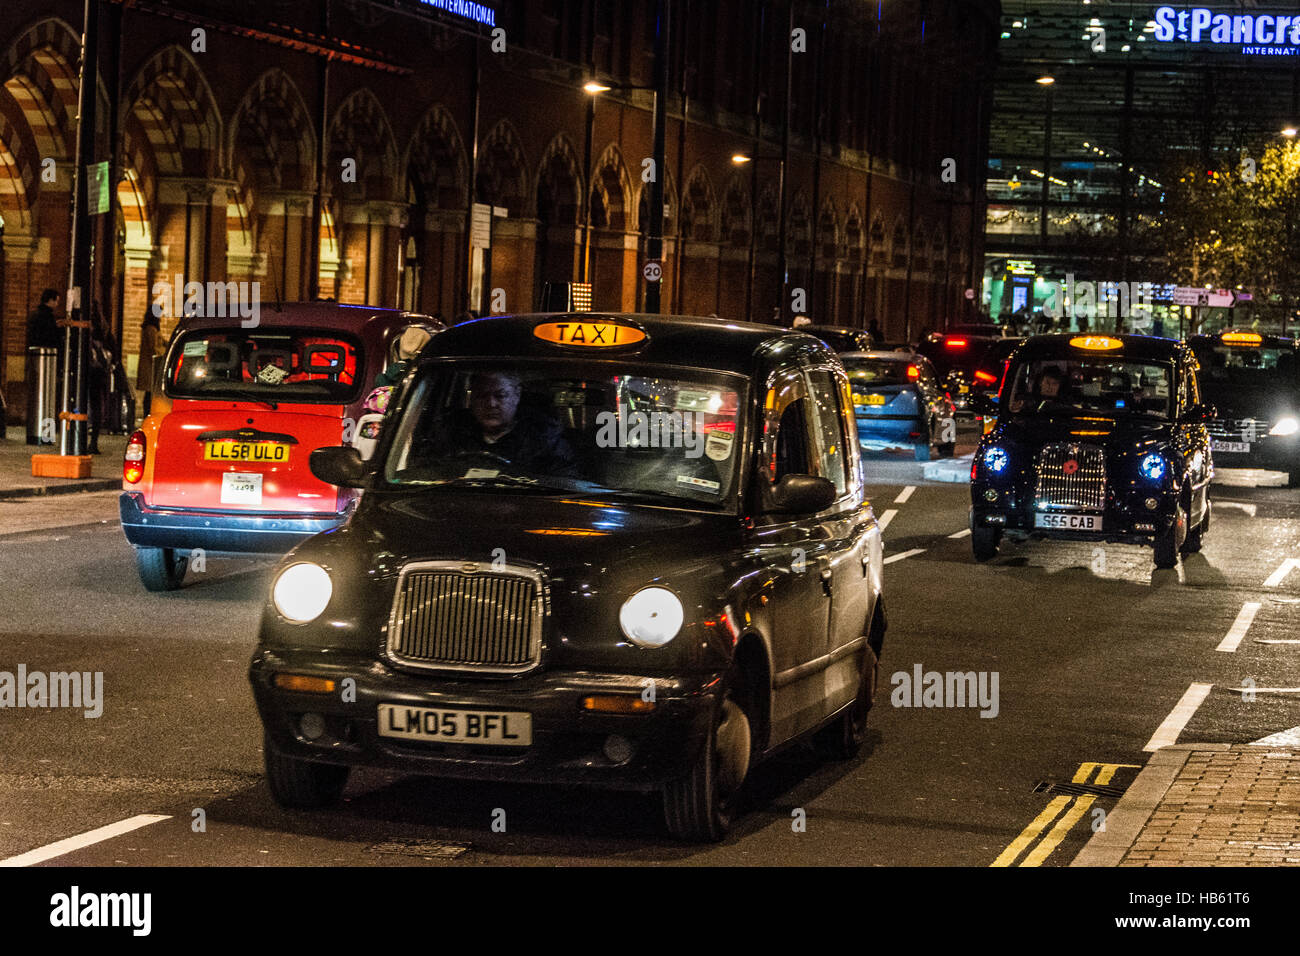 Taxis outside St. Pancras station in London, England, UK - Stock Image